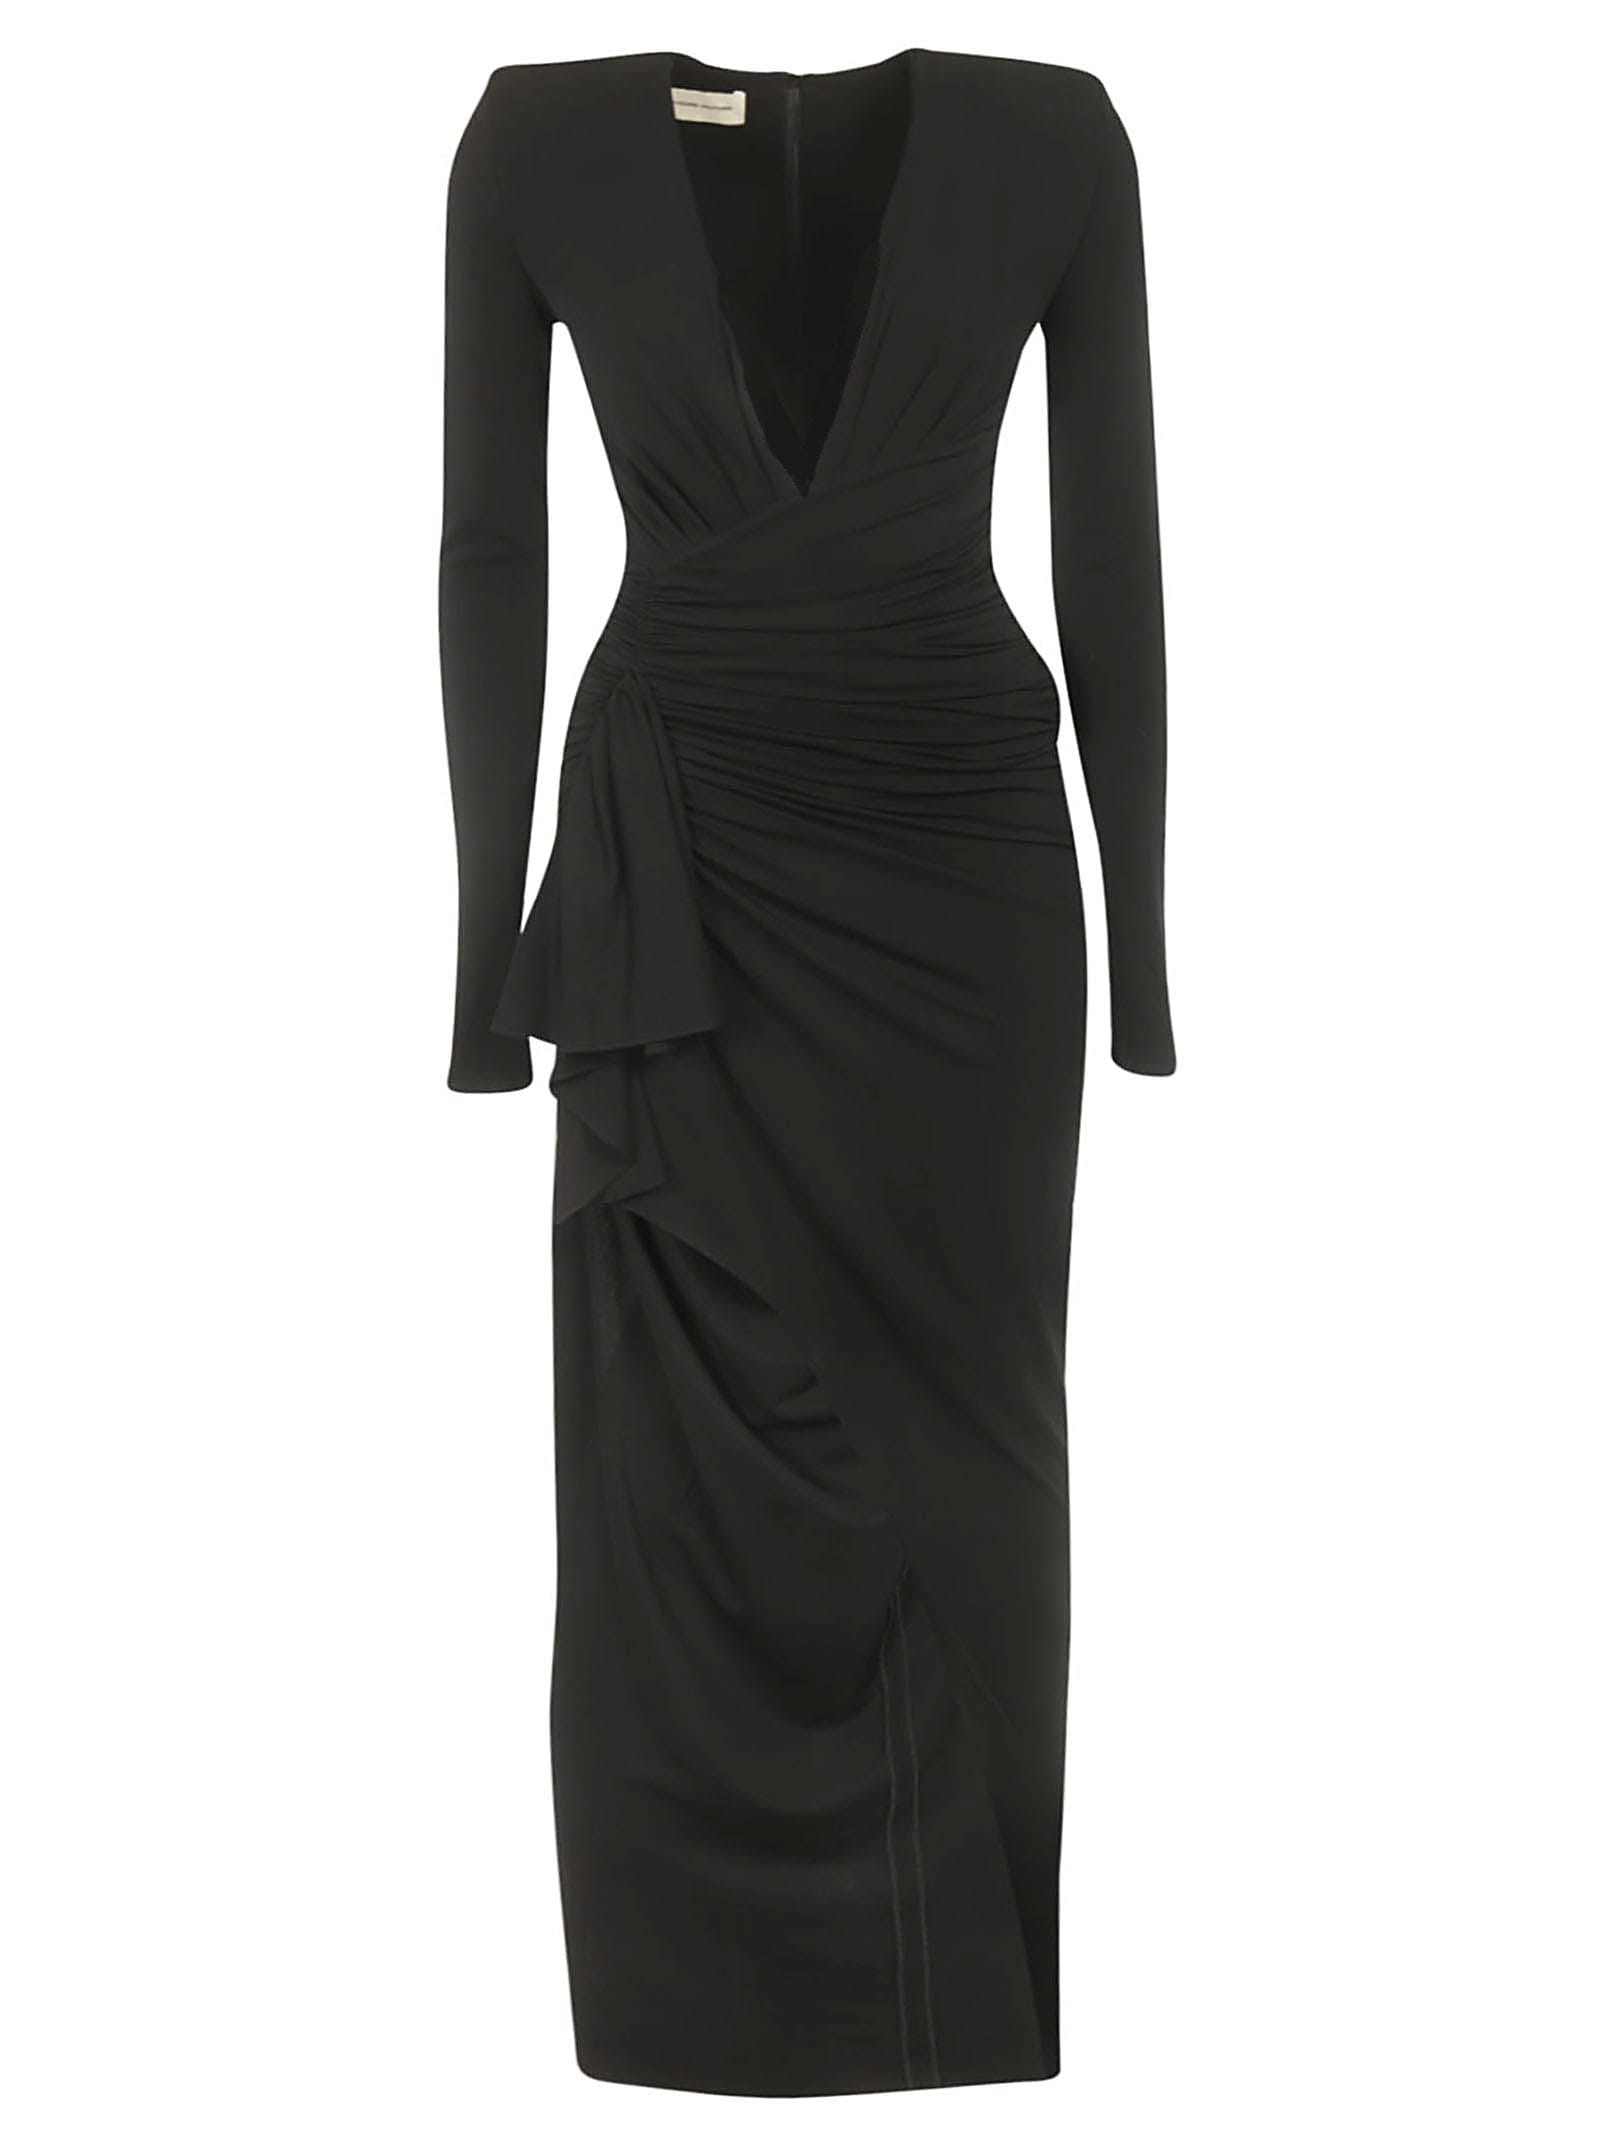 Alexandre Vauthier Ruched Dress